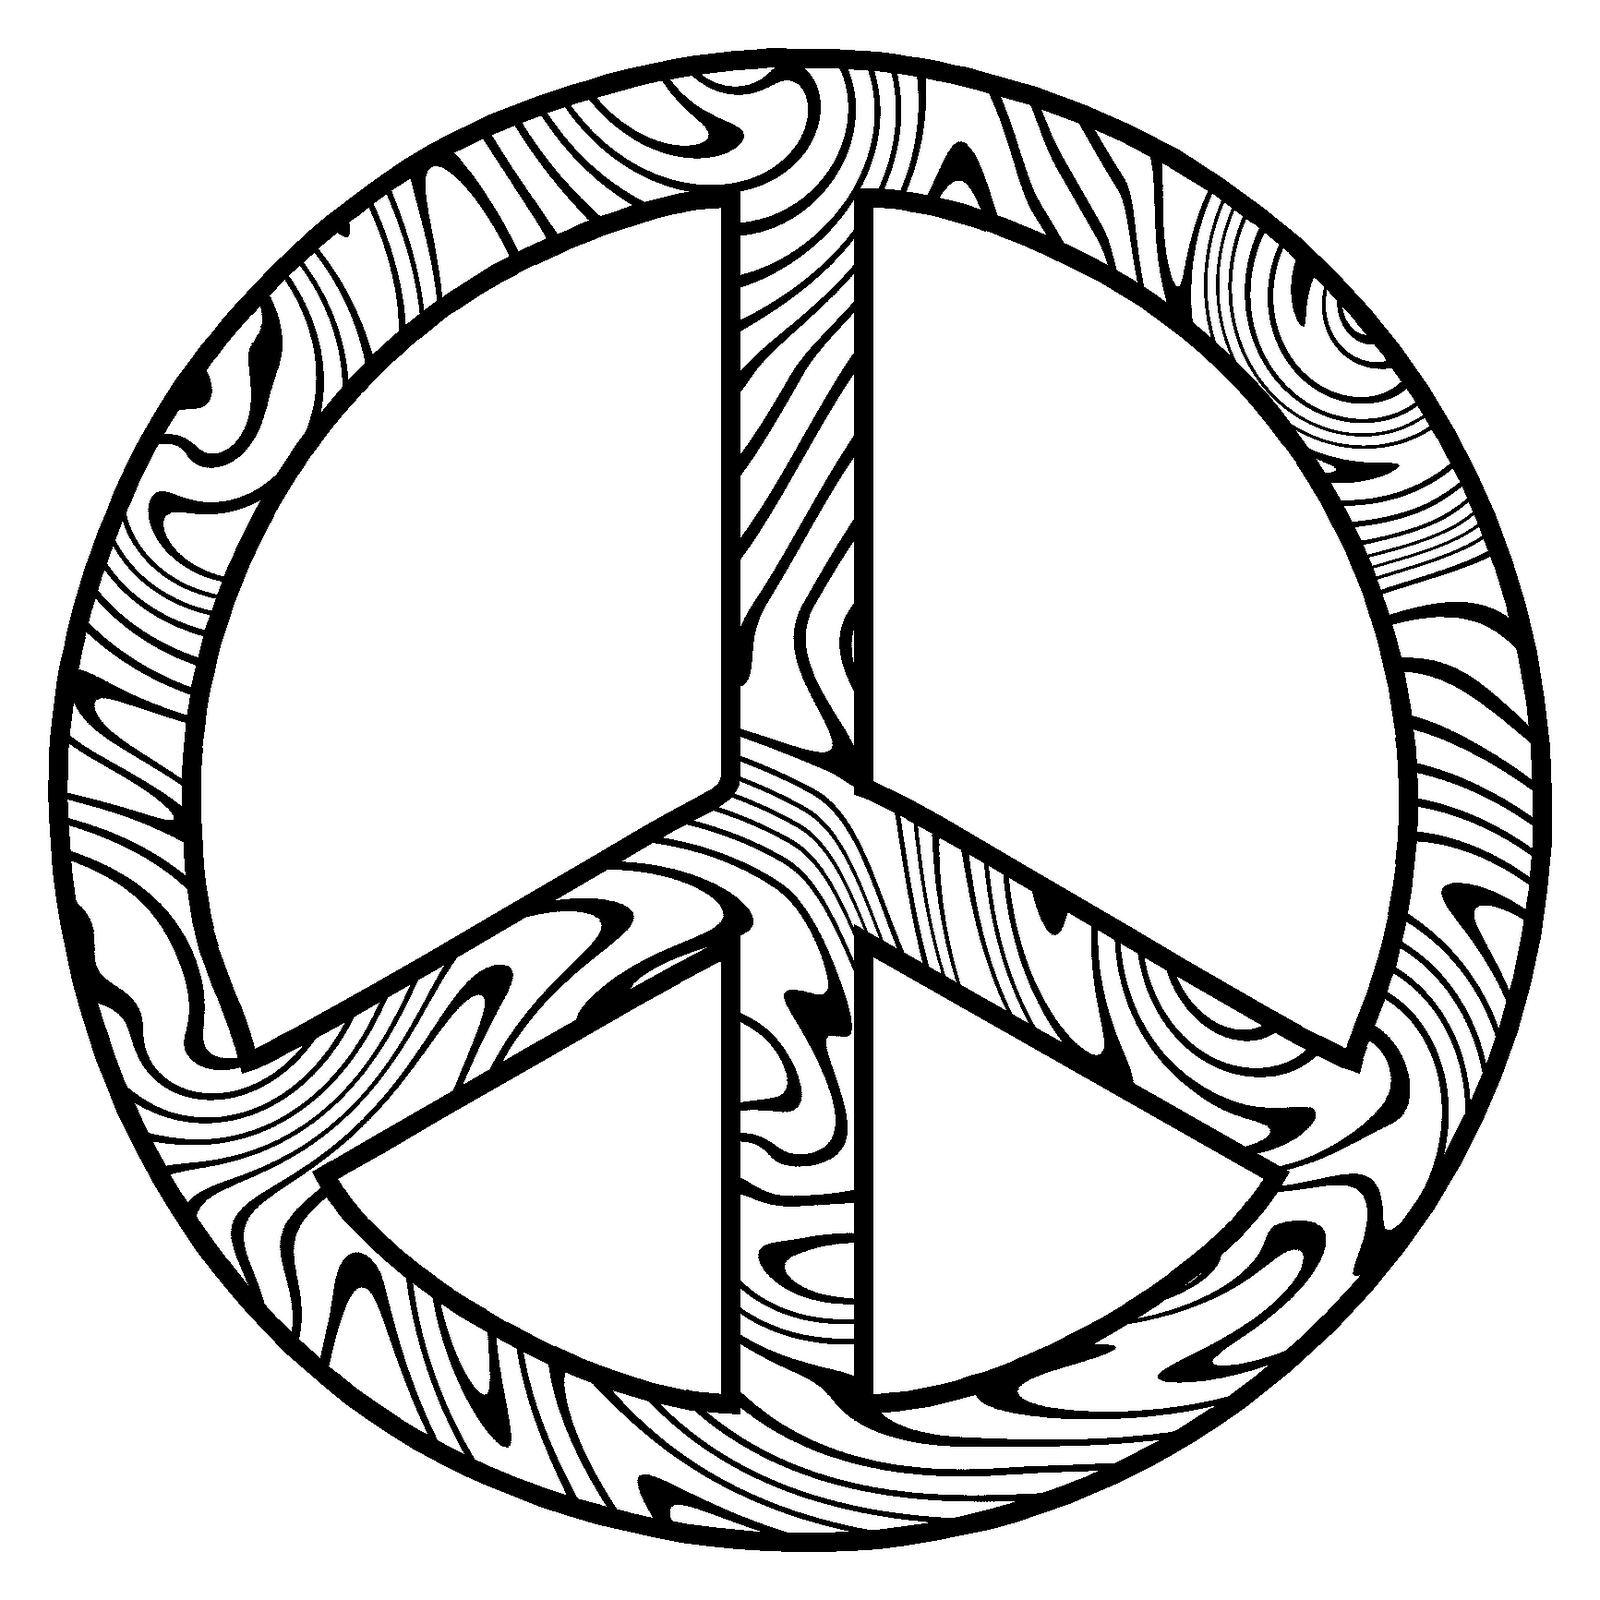 Peace coloring pages to download and print for free